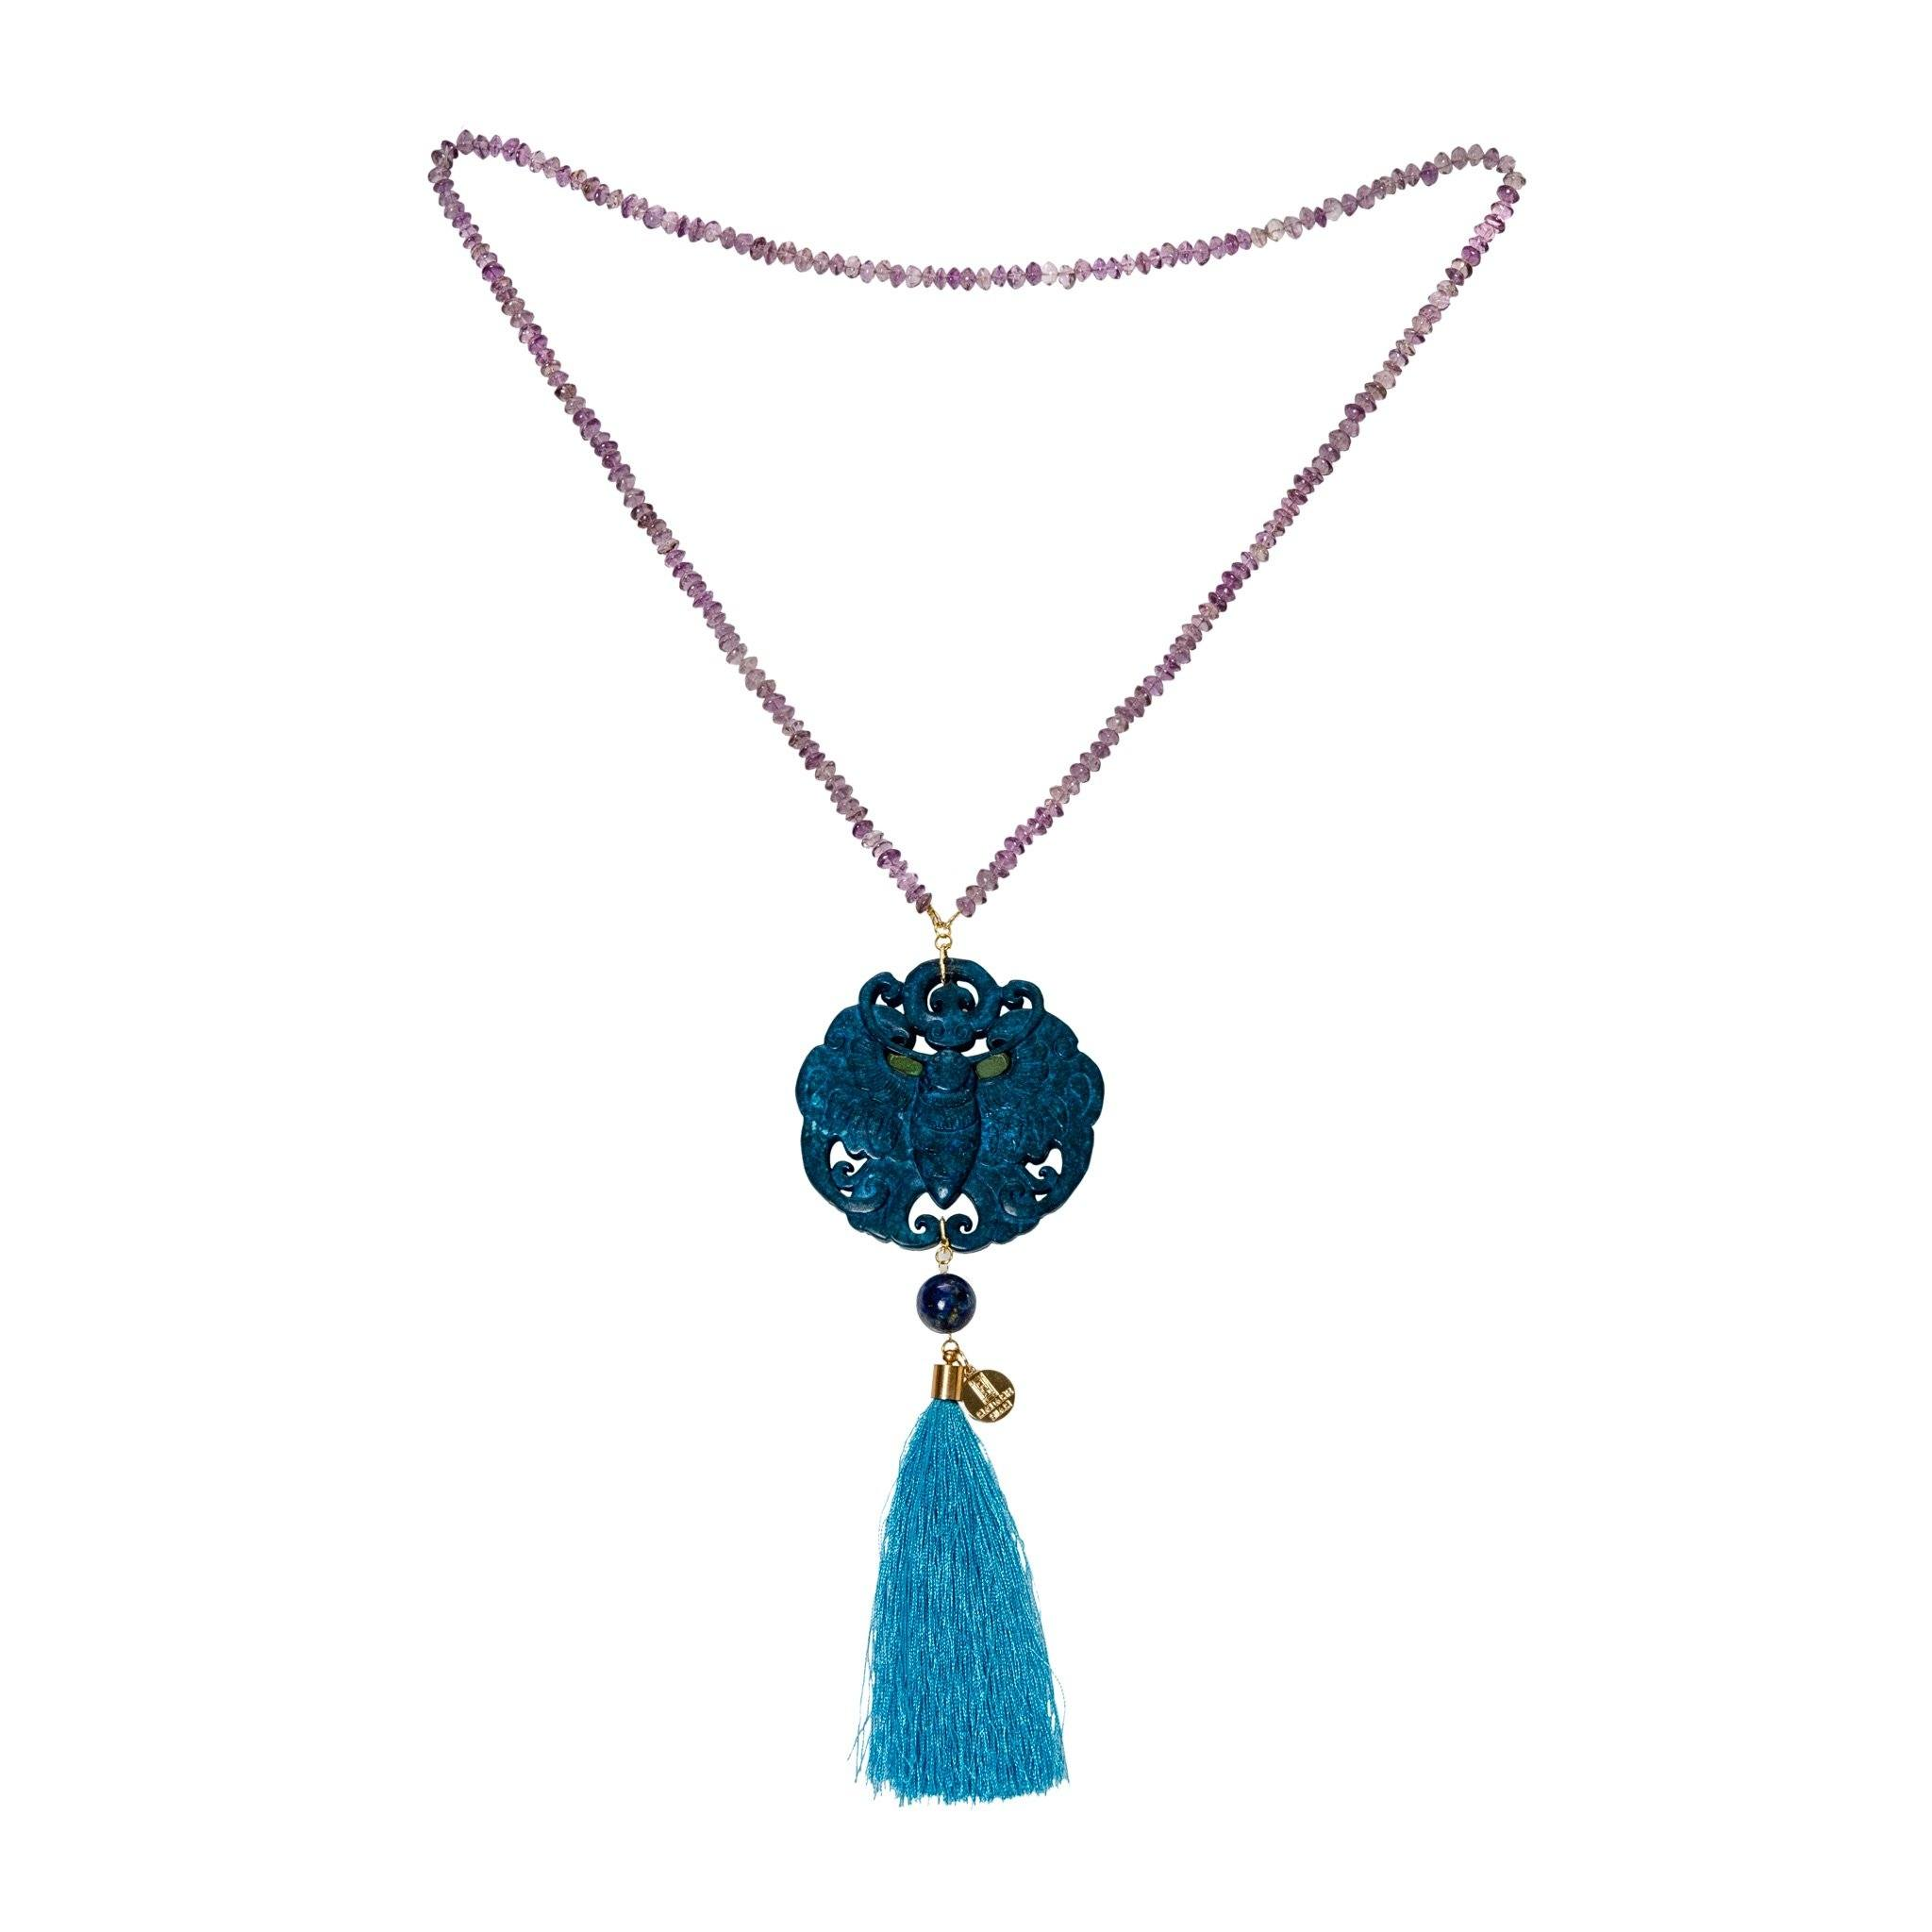 Hong Kong amethyst necklace with blue pendant - MadamSiam